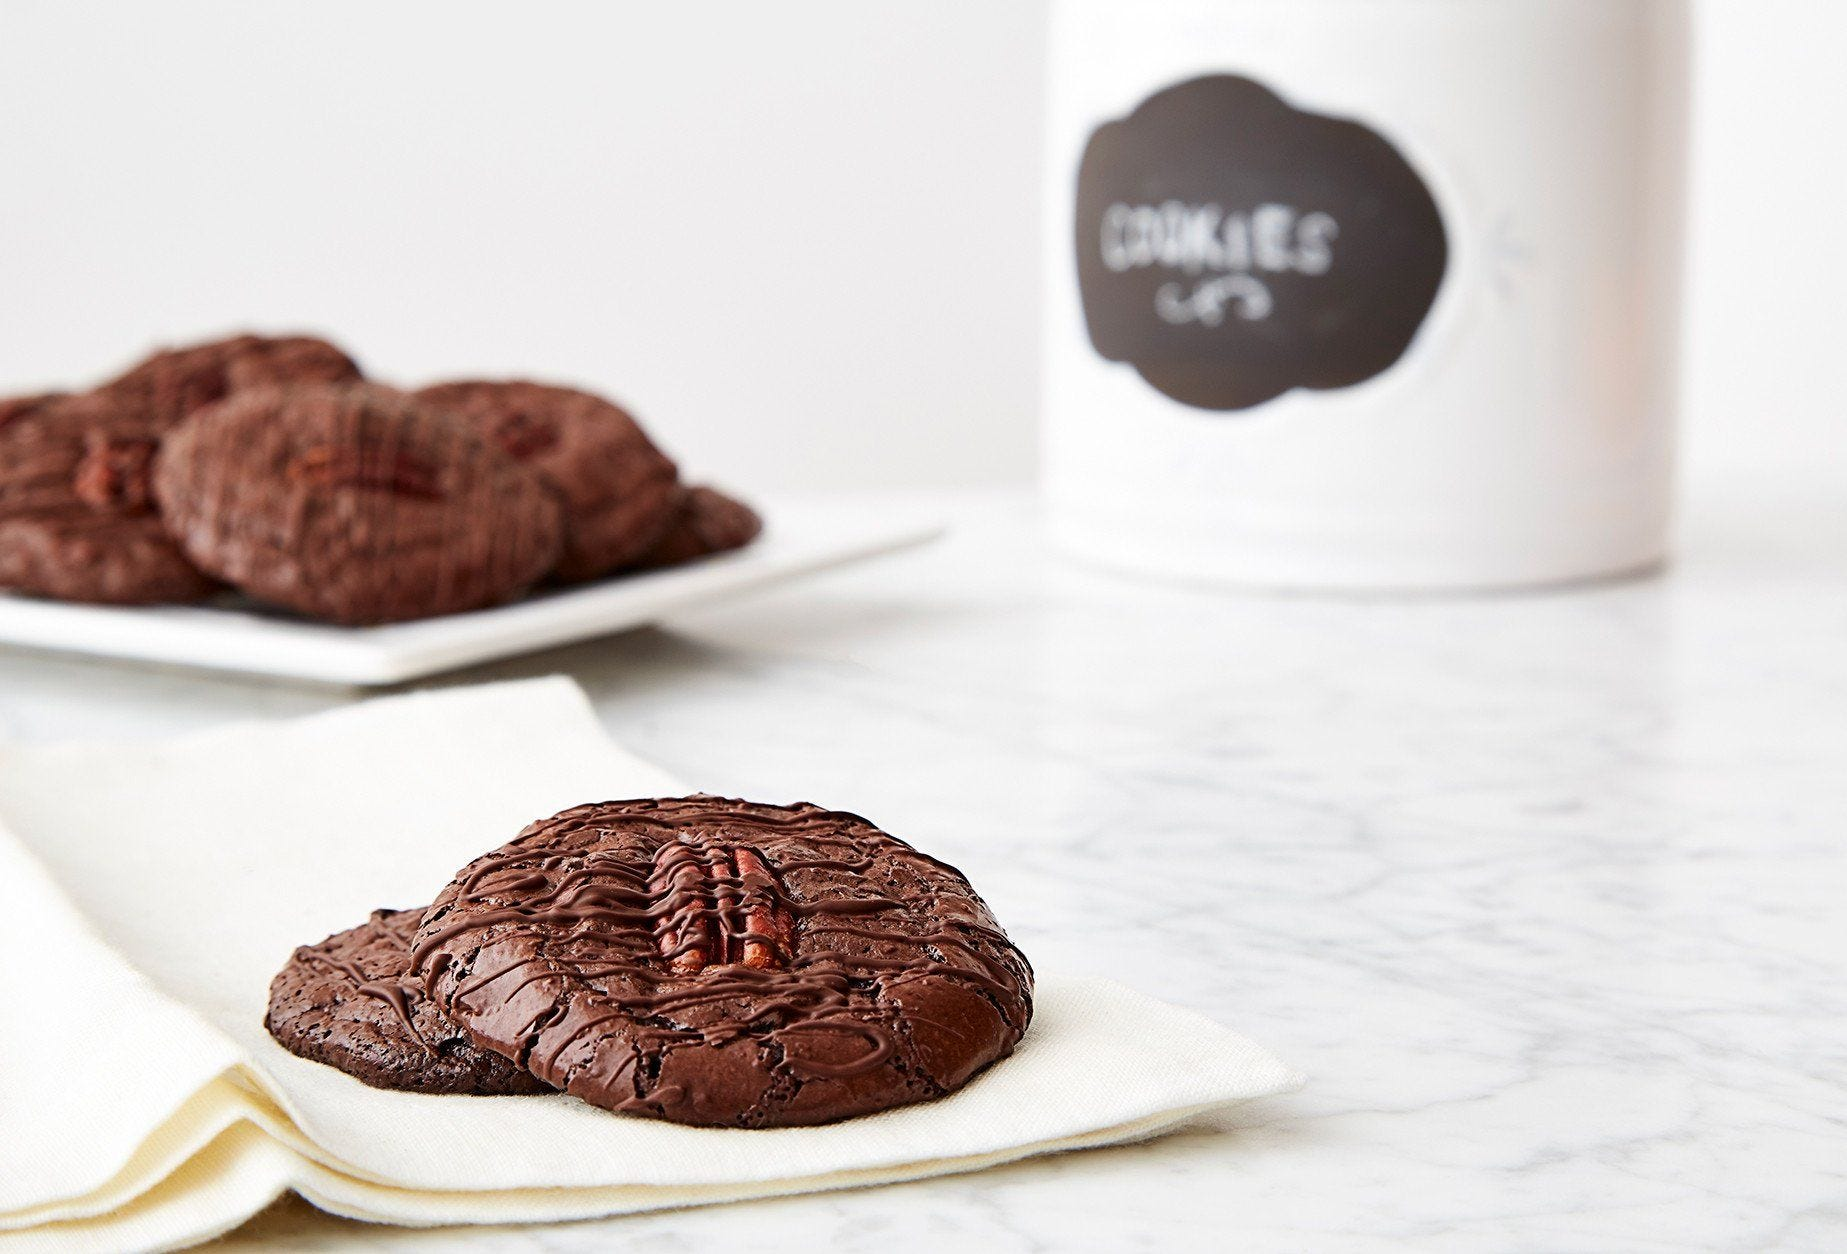 Flourless Chocolate Pecan Cookies with Chocolate Drizzle recipe.